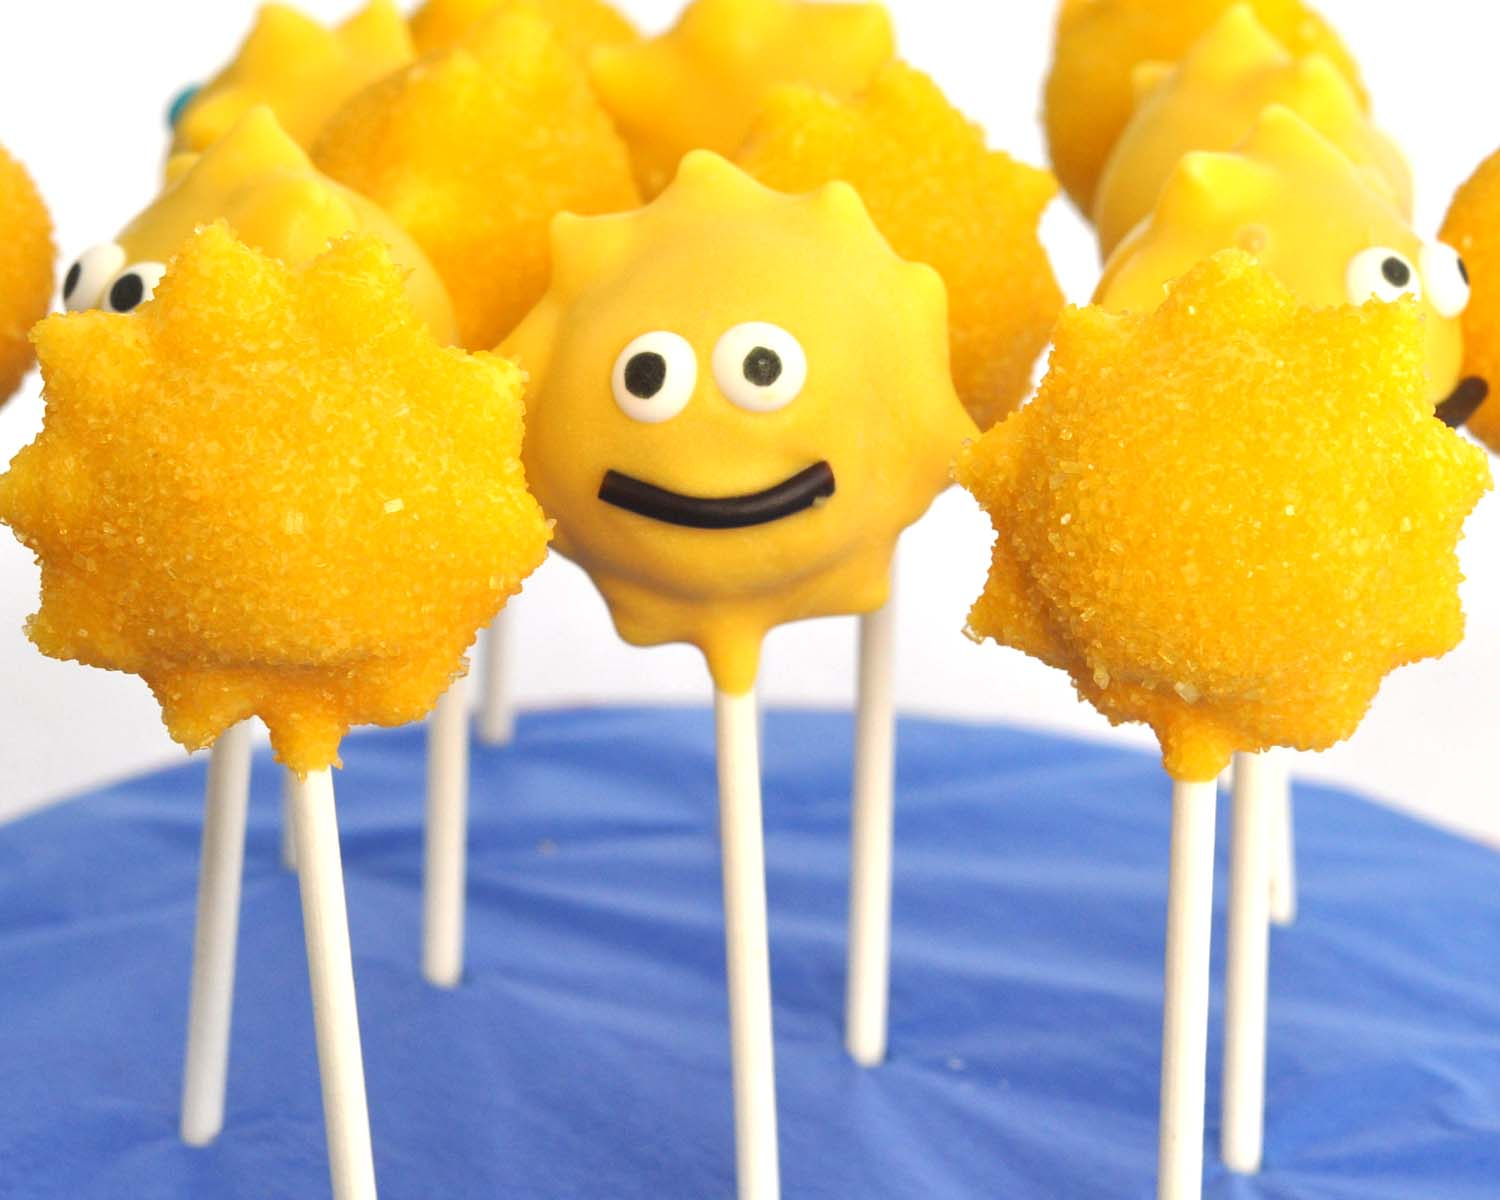 Beki Cook's Cake Blog: Summer Sunshine Cake Pops